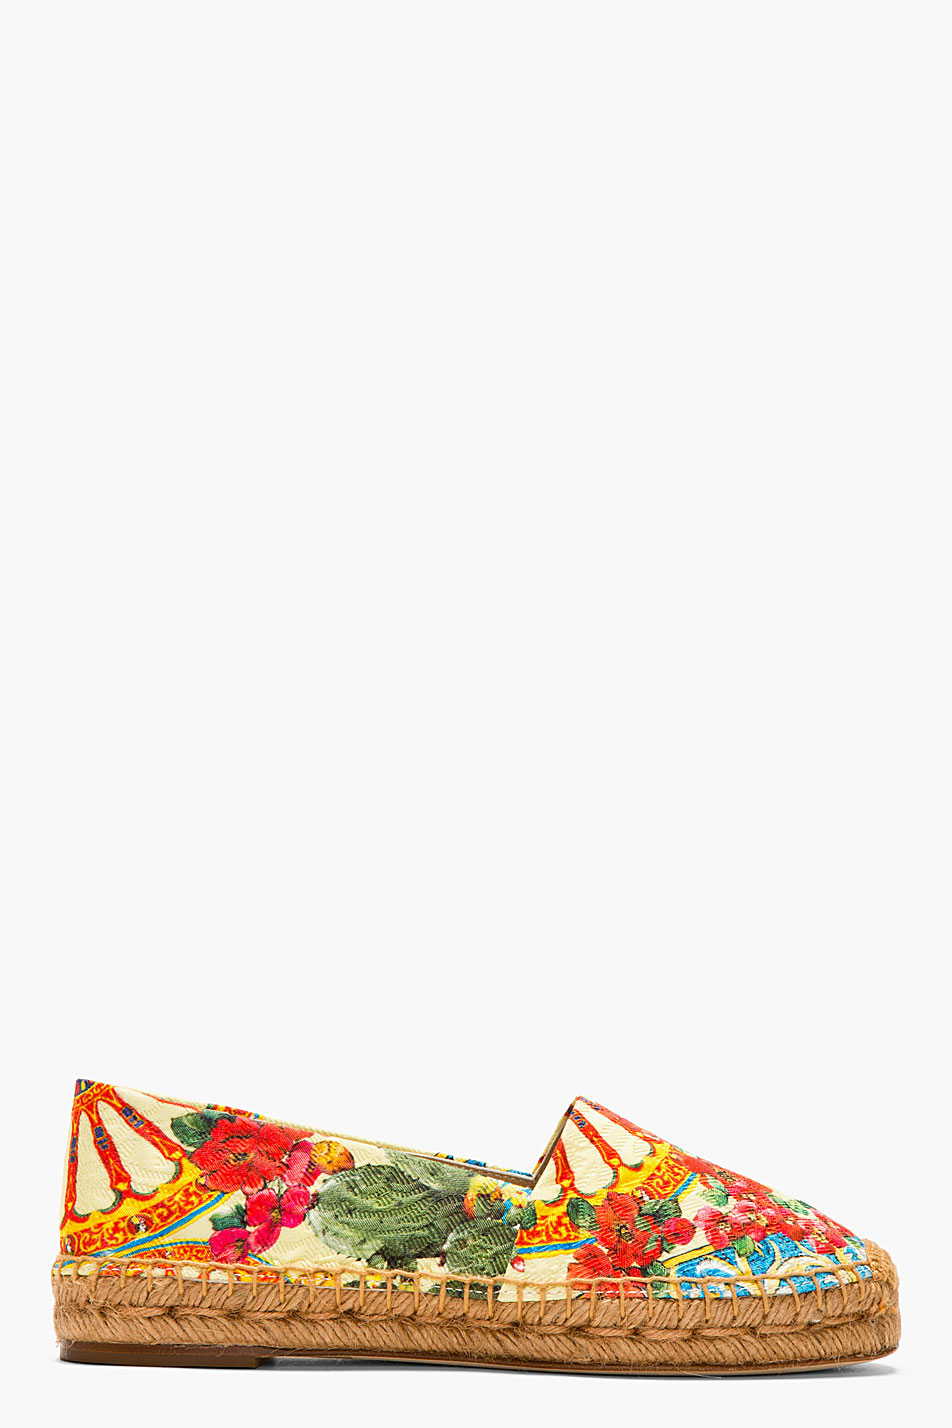 dolce and gabbana yellow floral print espadrilles